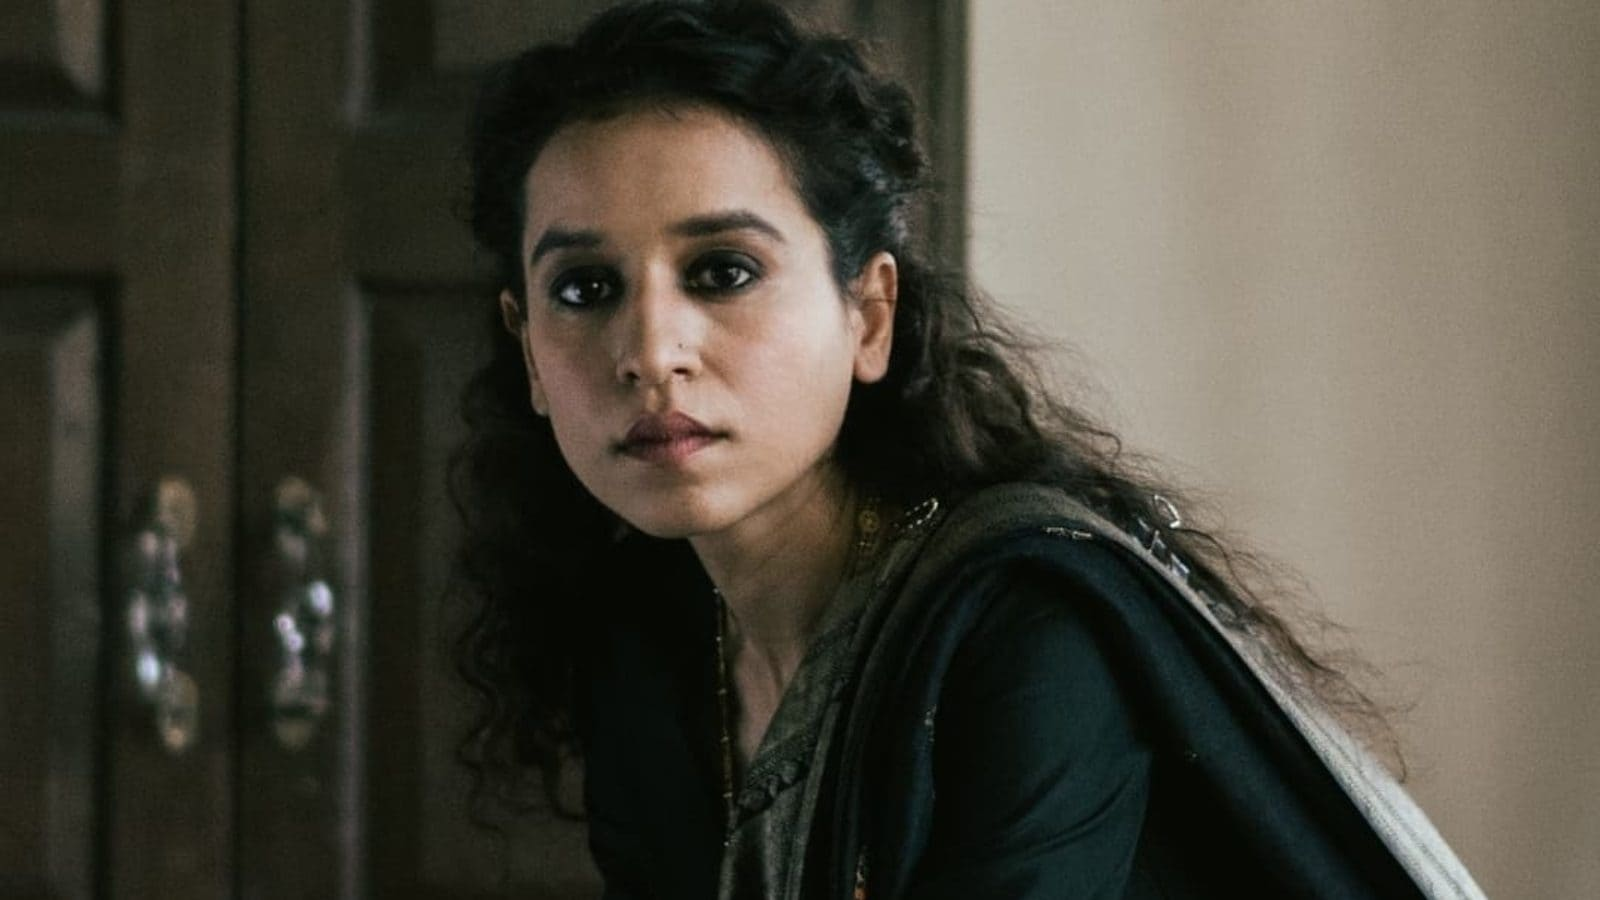 Tillotama Shome Says Troll Called Her 'Flop Actress Who Looks Likes Maid' And Twitter Loses Its Calm